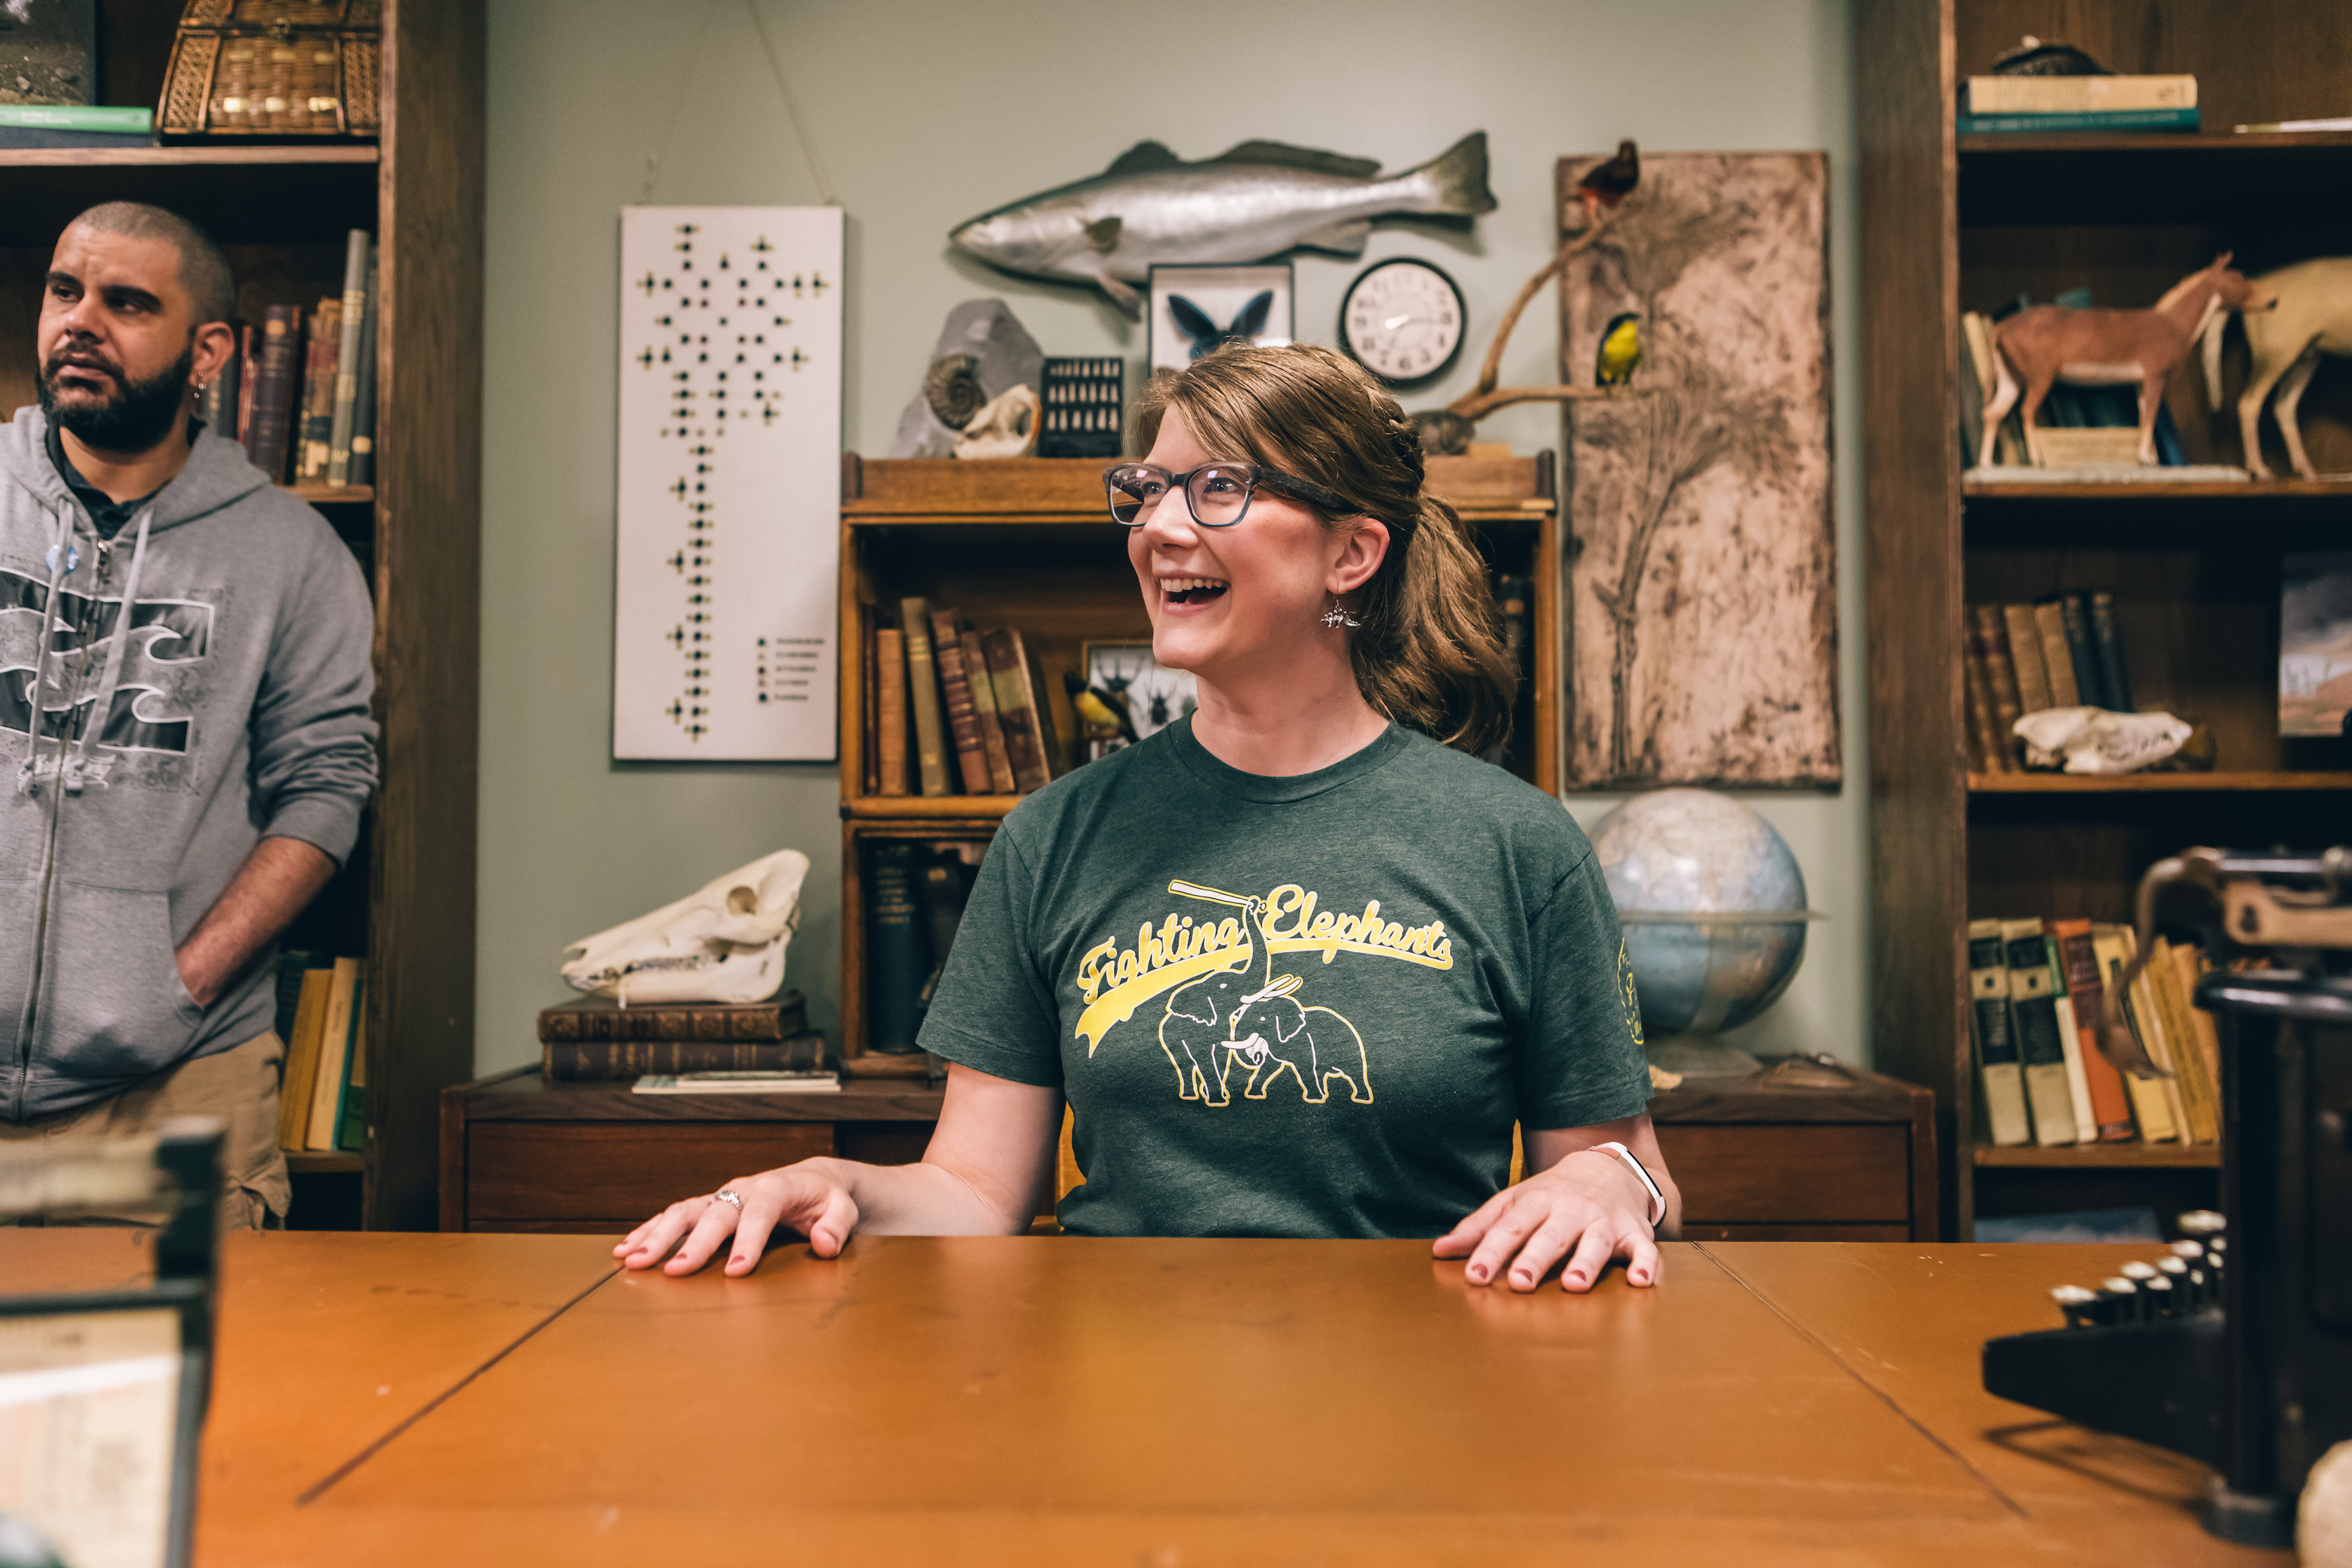 Emily Graslie smiles and looks to her right, while sitting at a desk. Books and specimens are visible in the background.